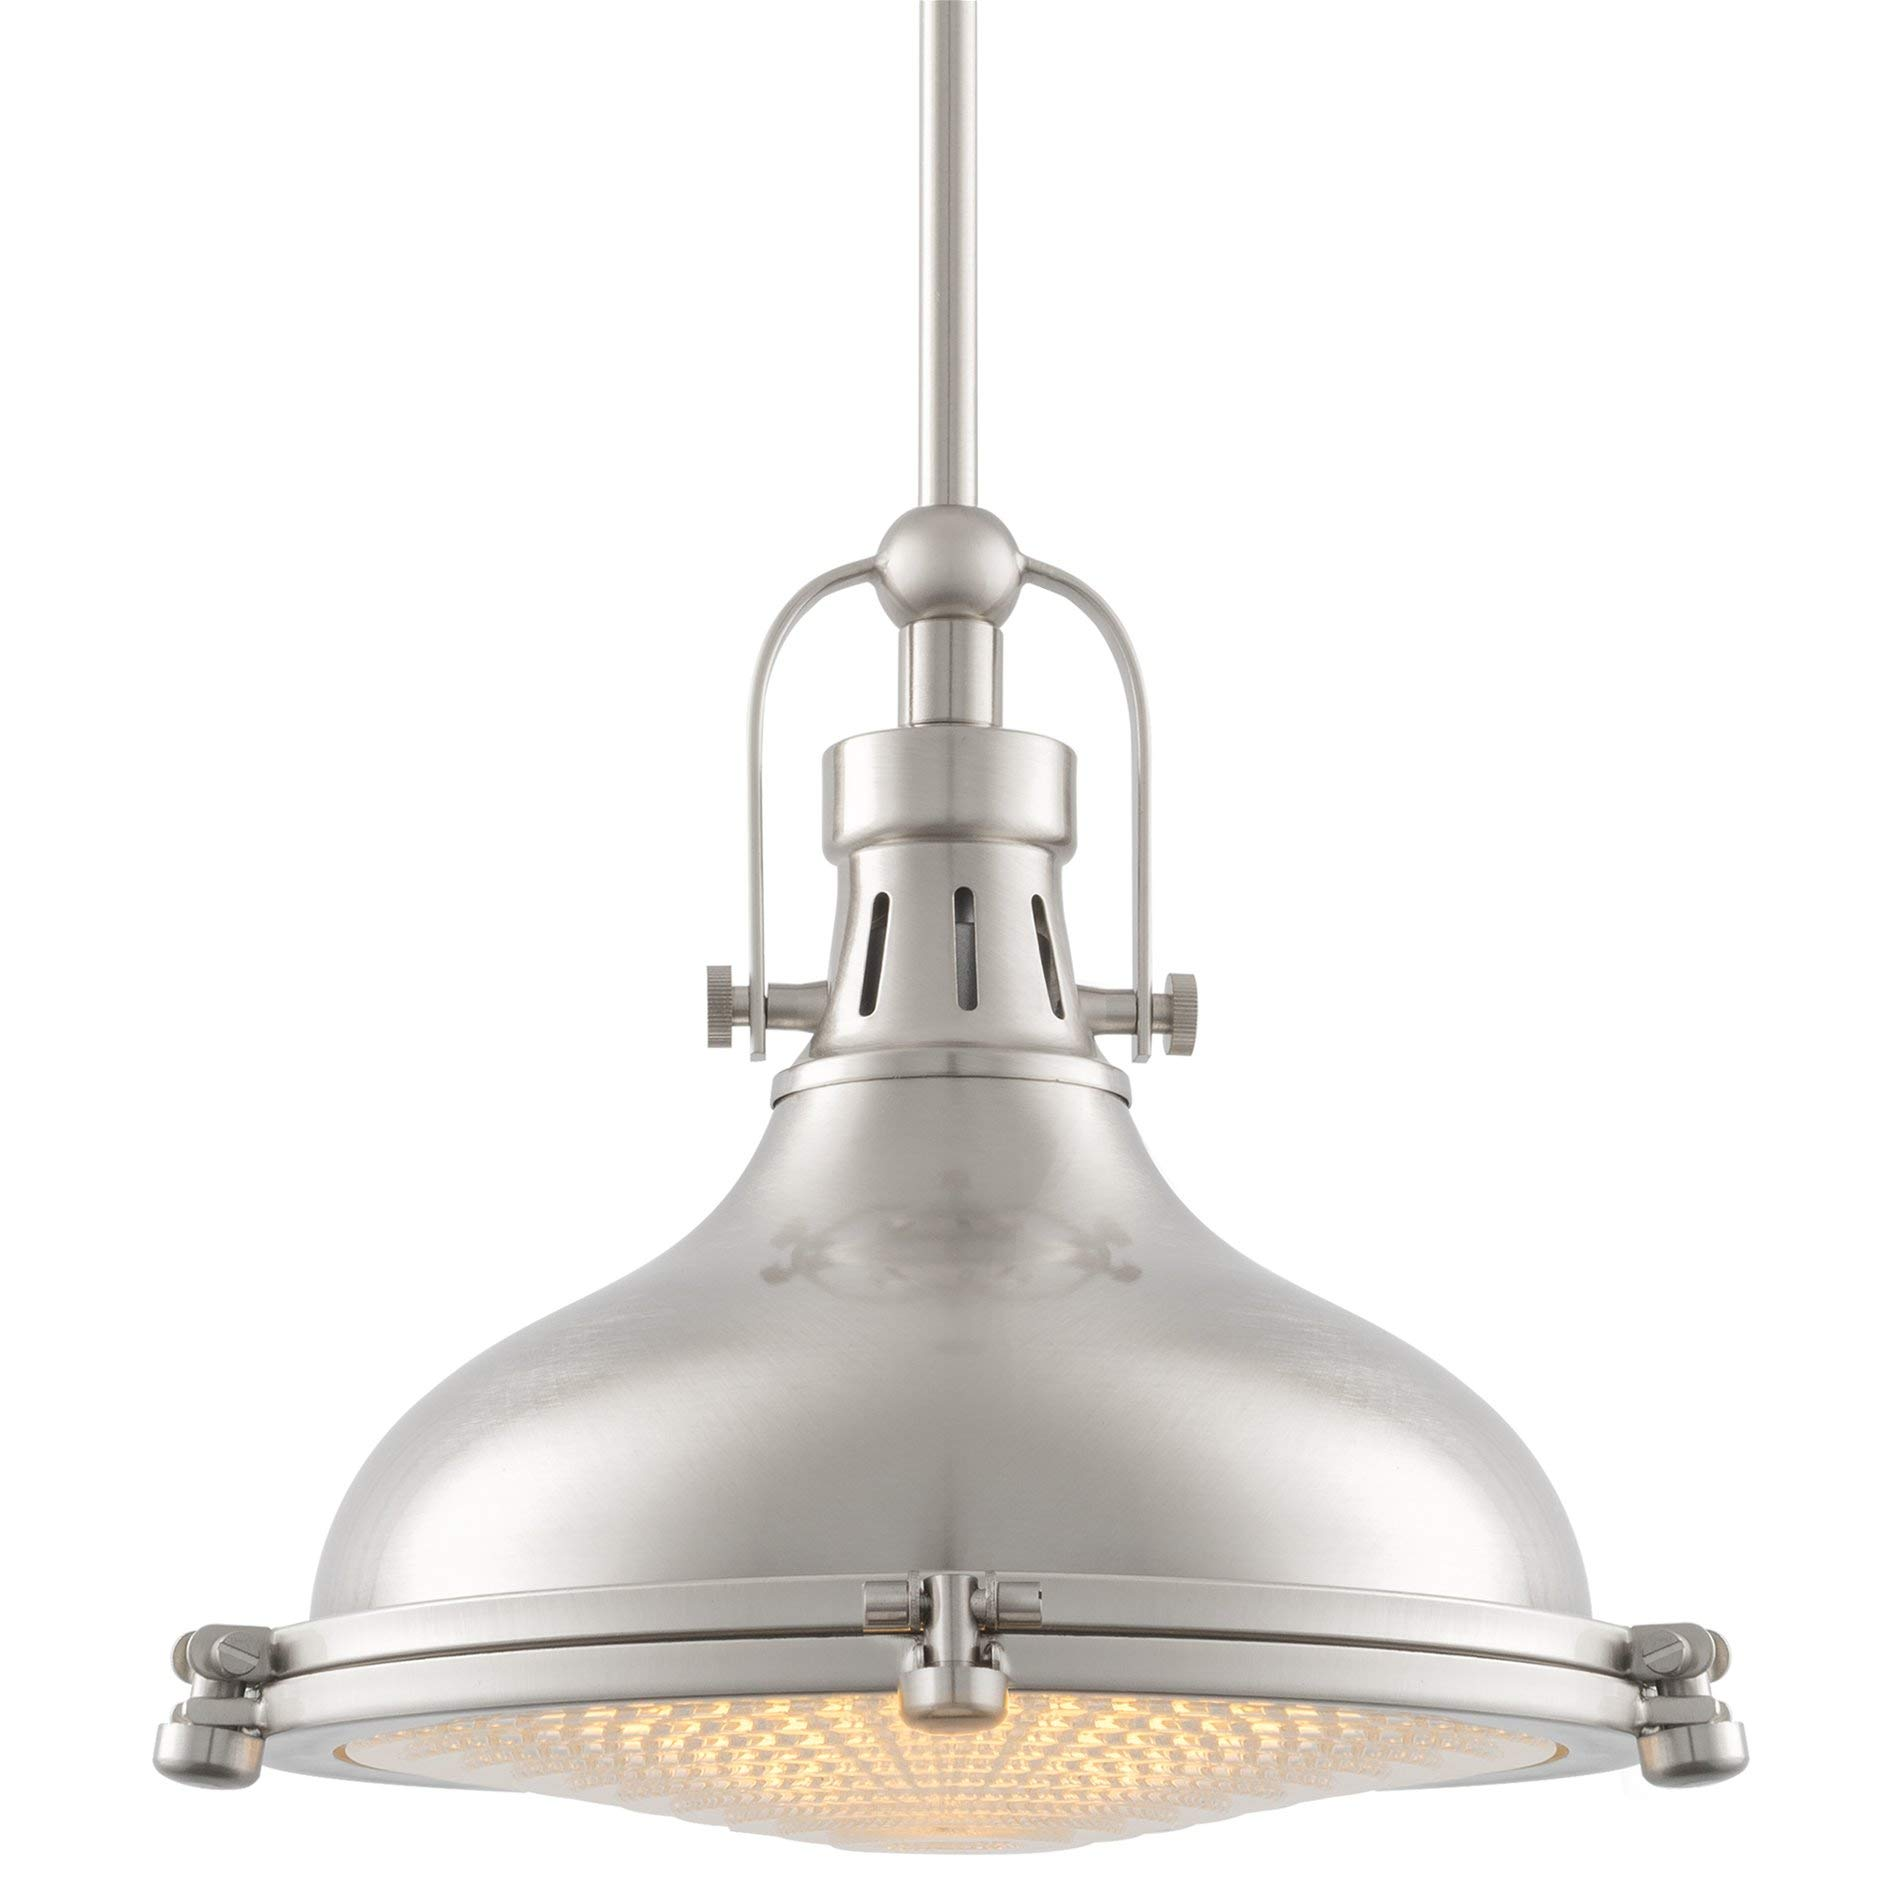 Kira Home Beacon 11'' Industrial Farmhouse Pendant Light with Round Fresnel Glass Lens, Adjustable Hanging Height, Brushed Nickel Finish